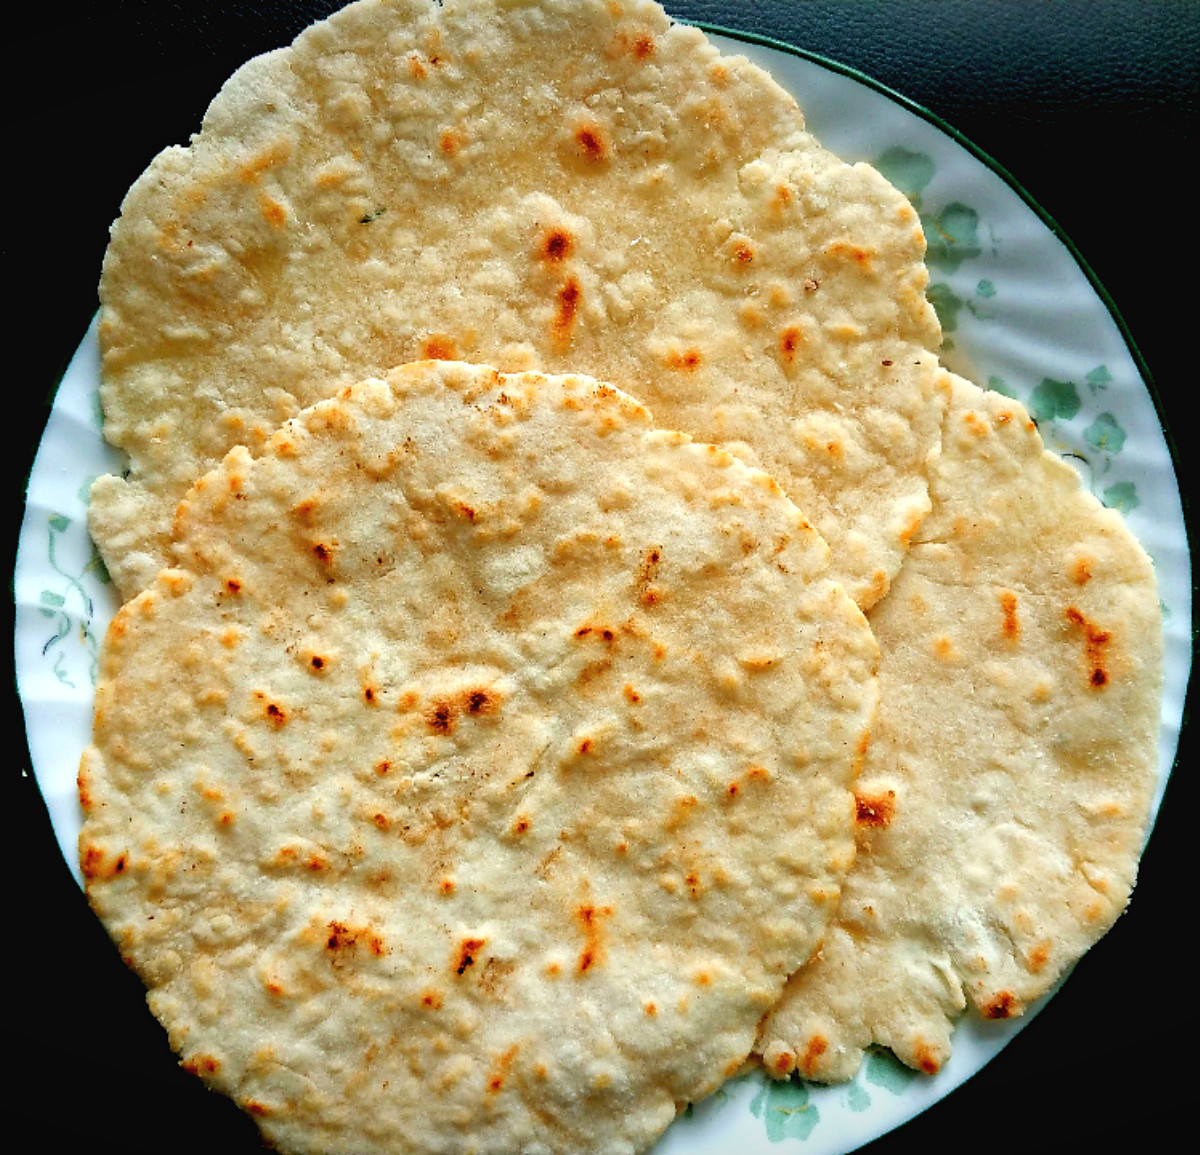 Homemade Gluten Free Flour Tortillas spread on a plate